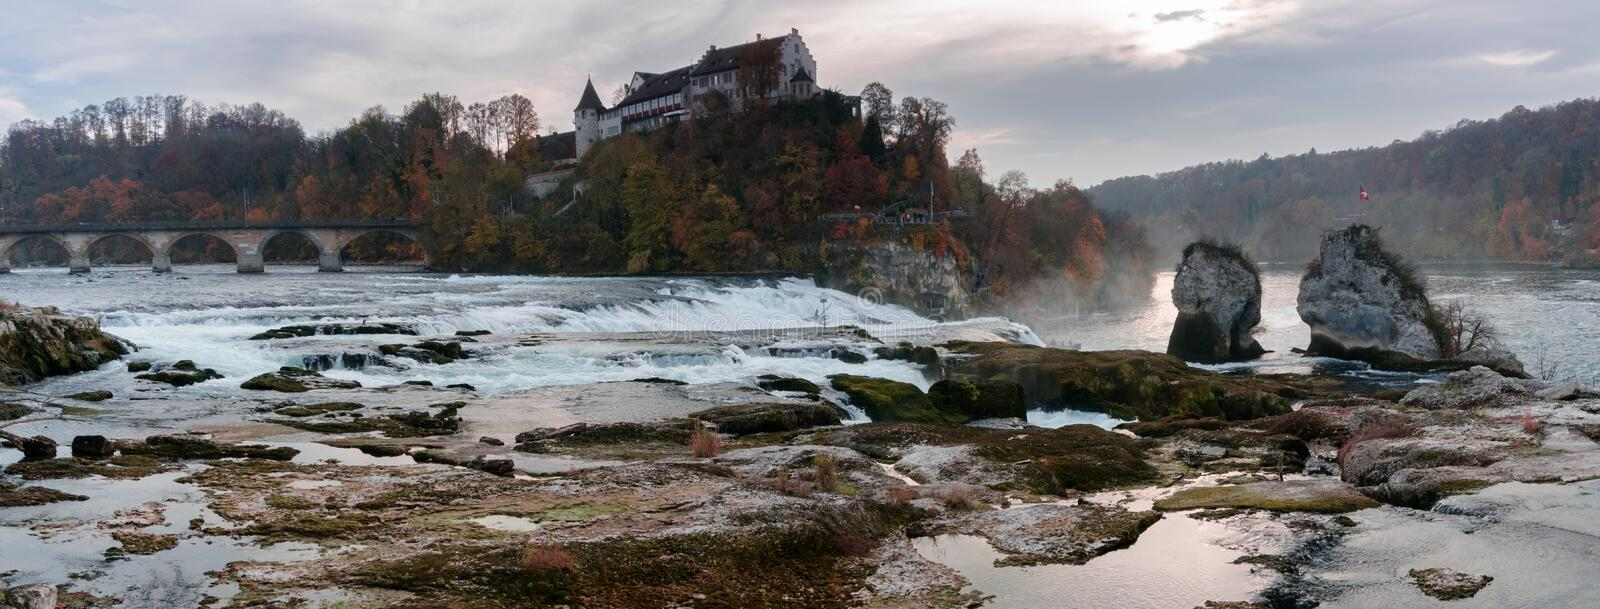 Nightfall and dusk on the Rhine Falls and Rhine River with an illuminated castle building on the water stock images